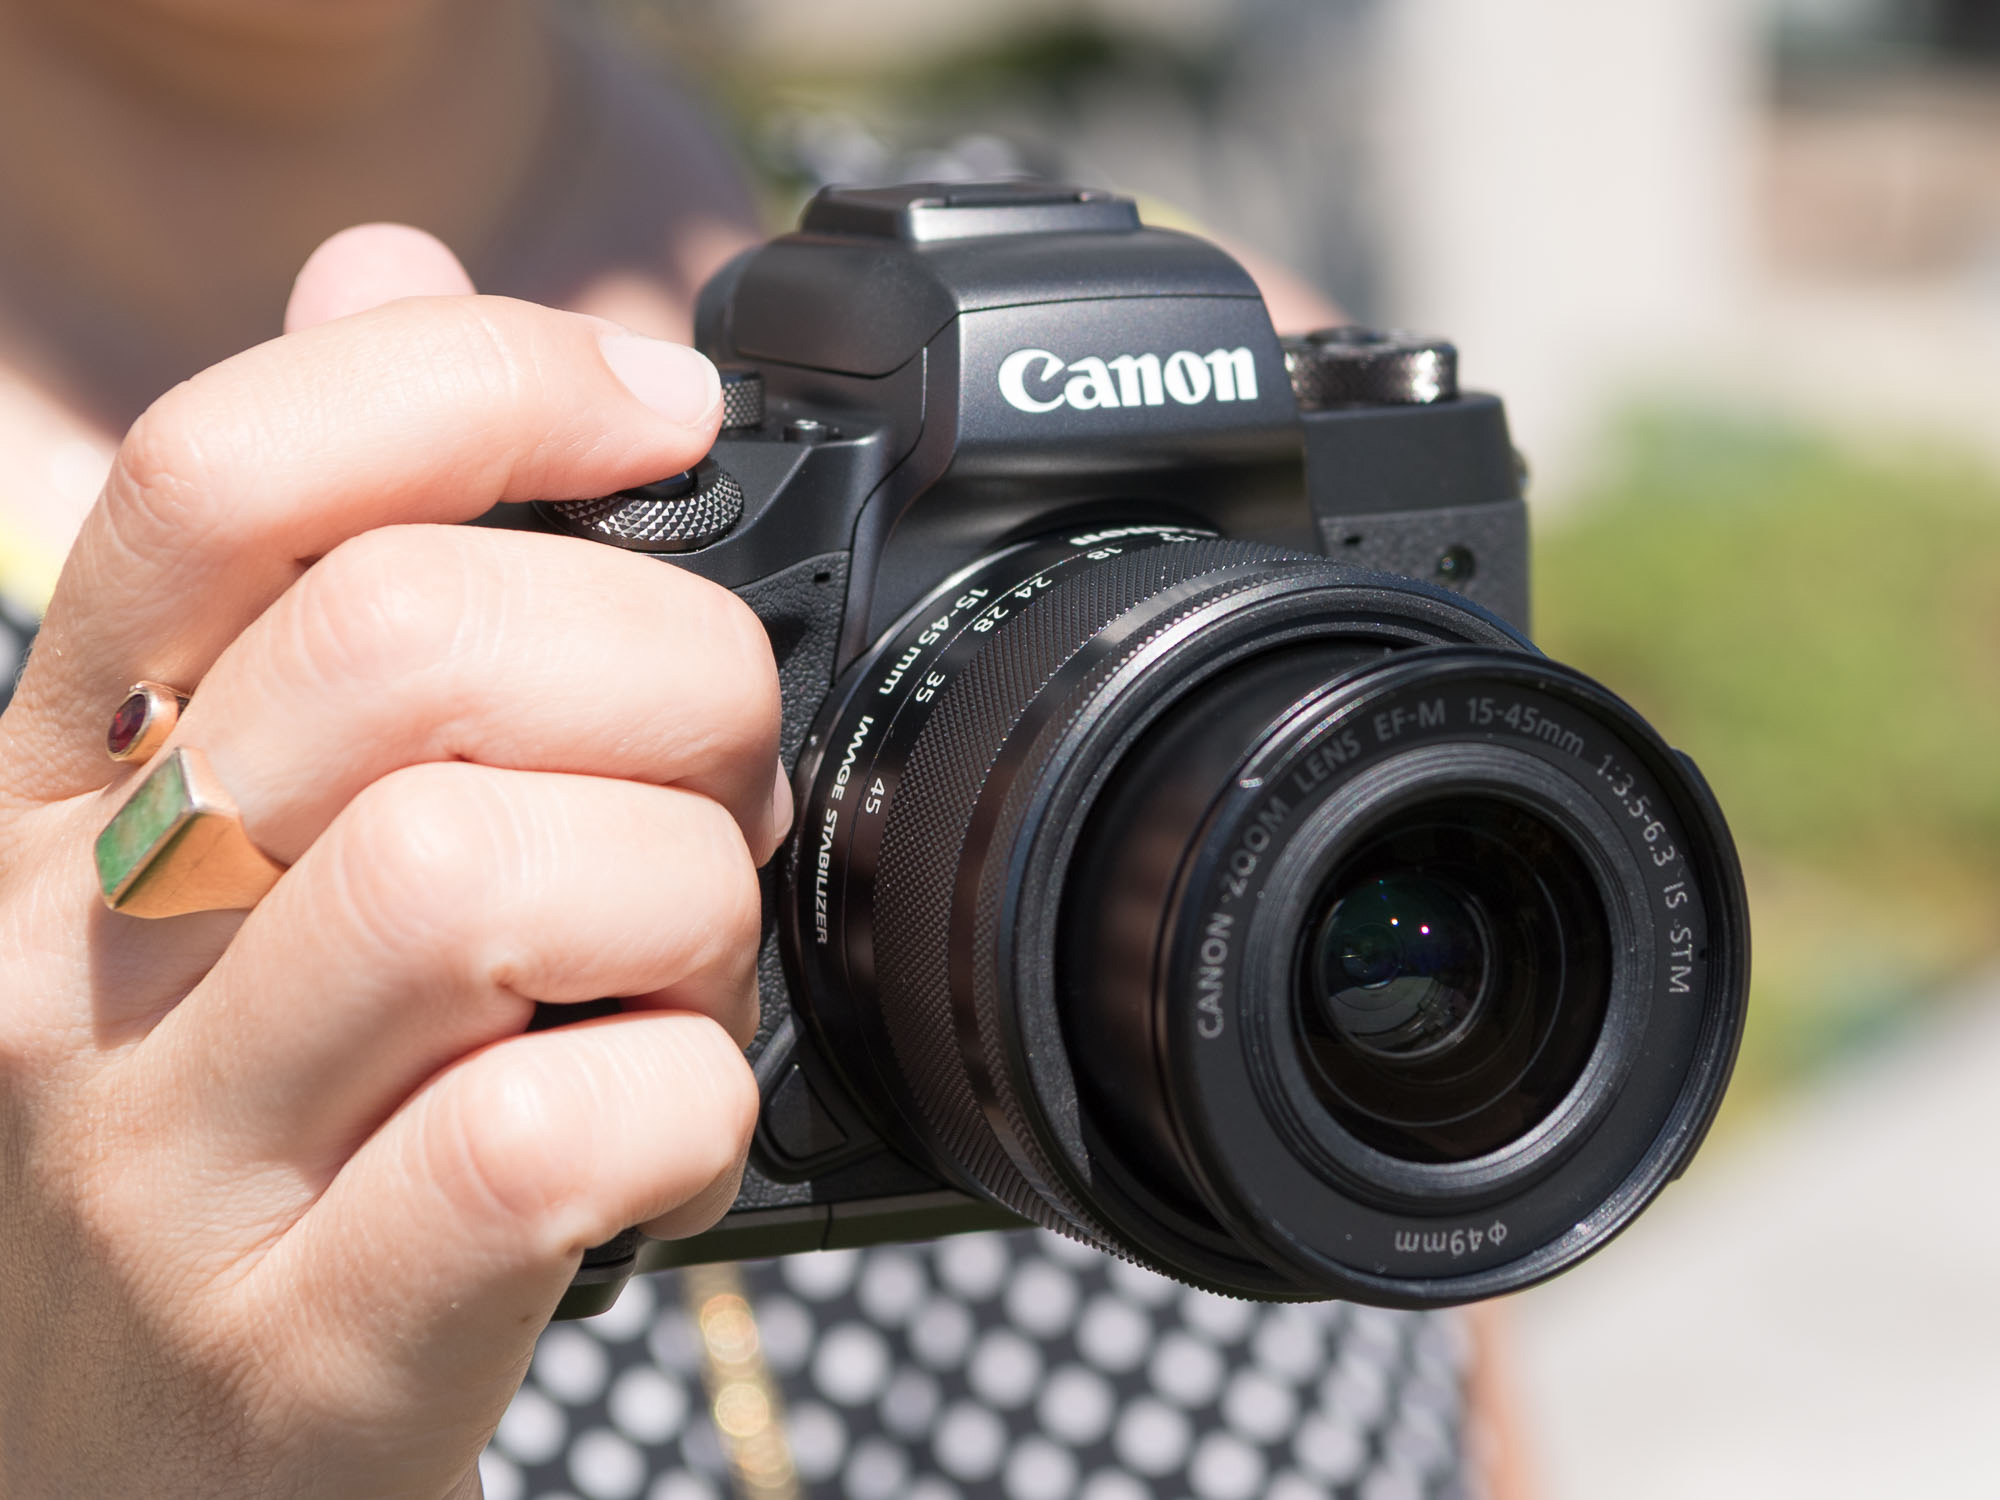 Reasons You Should Definitely Get a Canon Camera